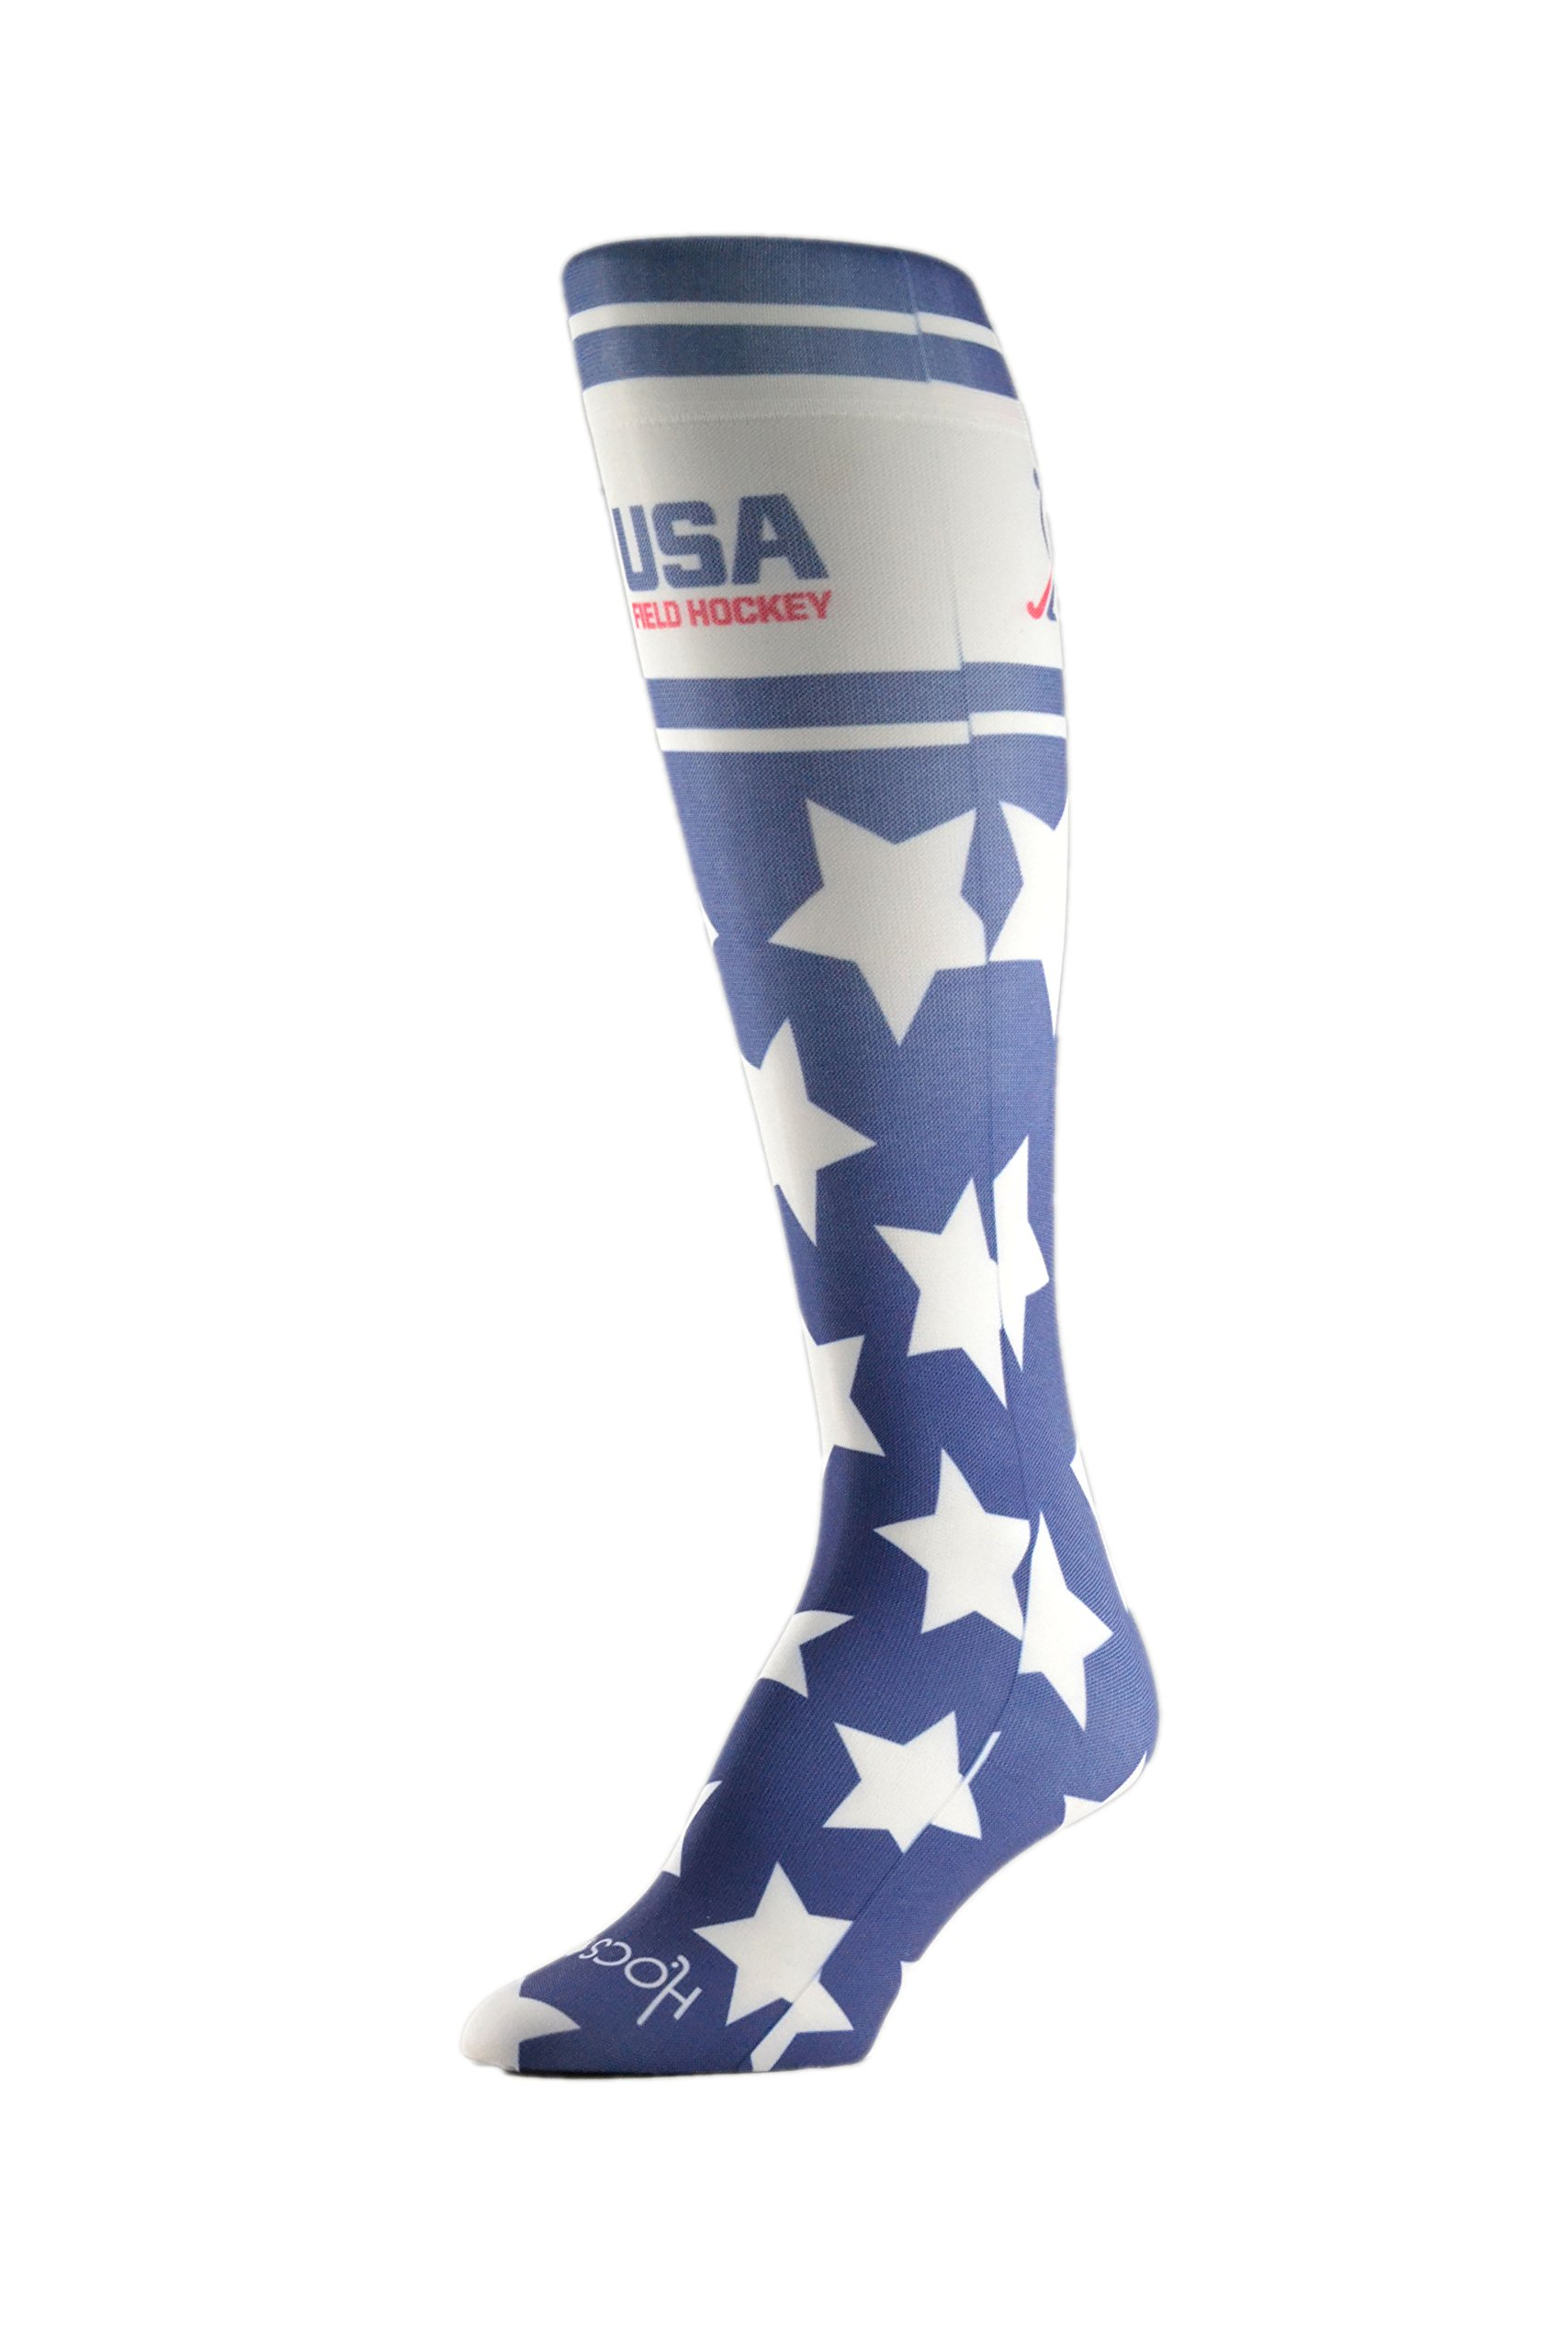 HOCSOCX Womens/Girls Shin Guard Rash UNDER Sport Socks (Medium (Shoe Size 5-11), USA Field Hockey Stars)